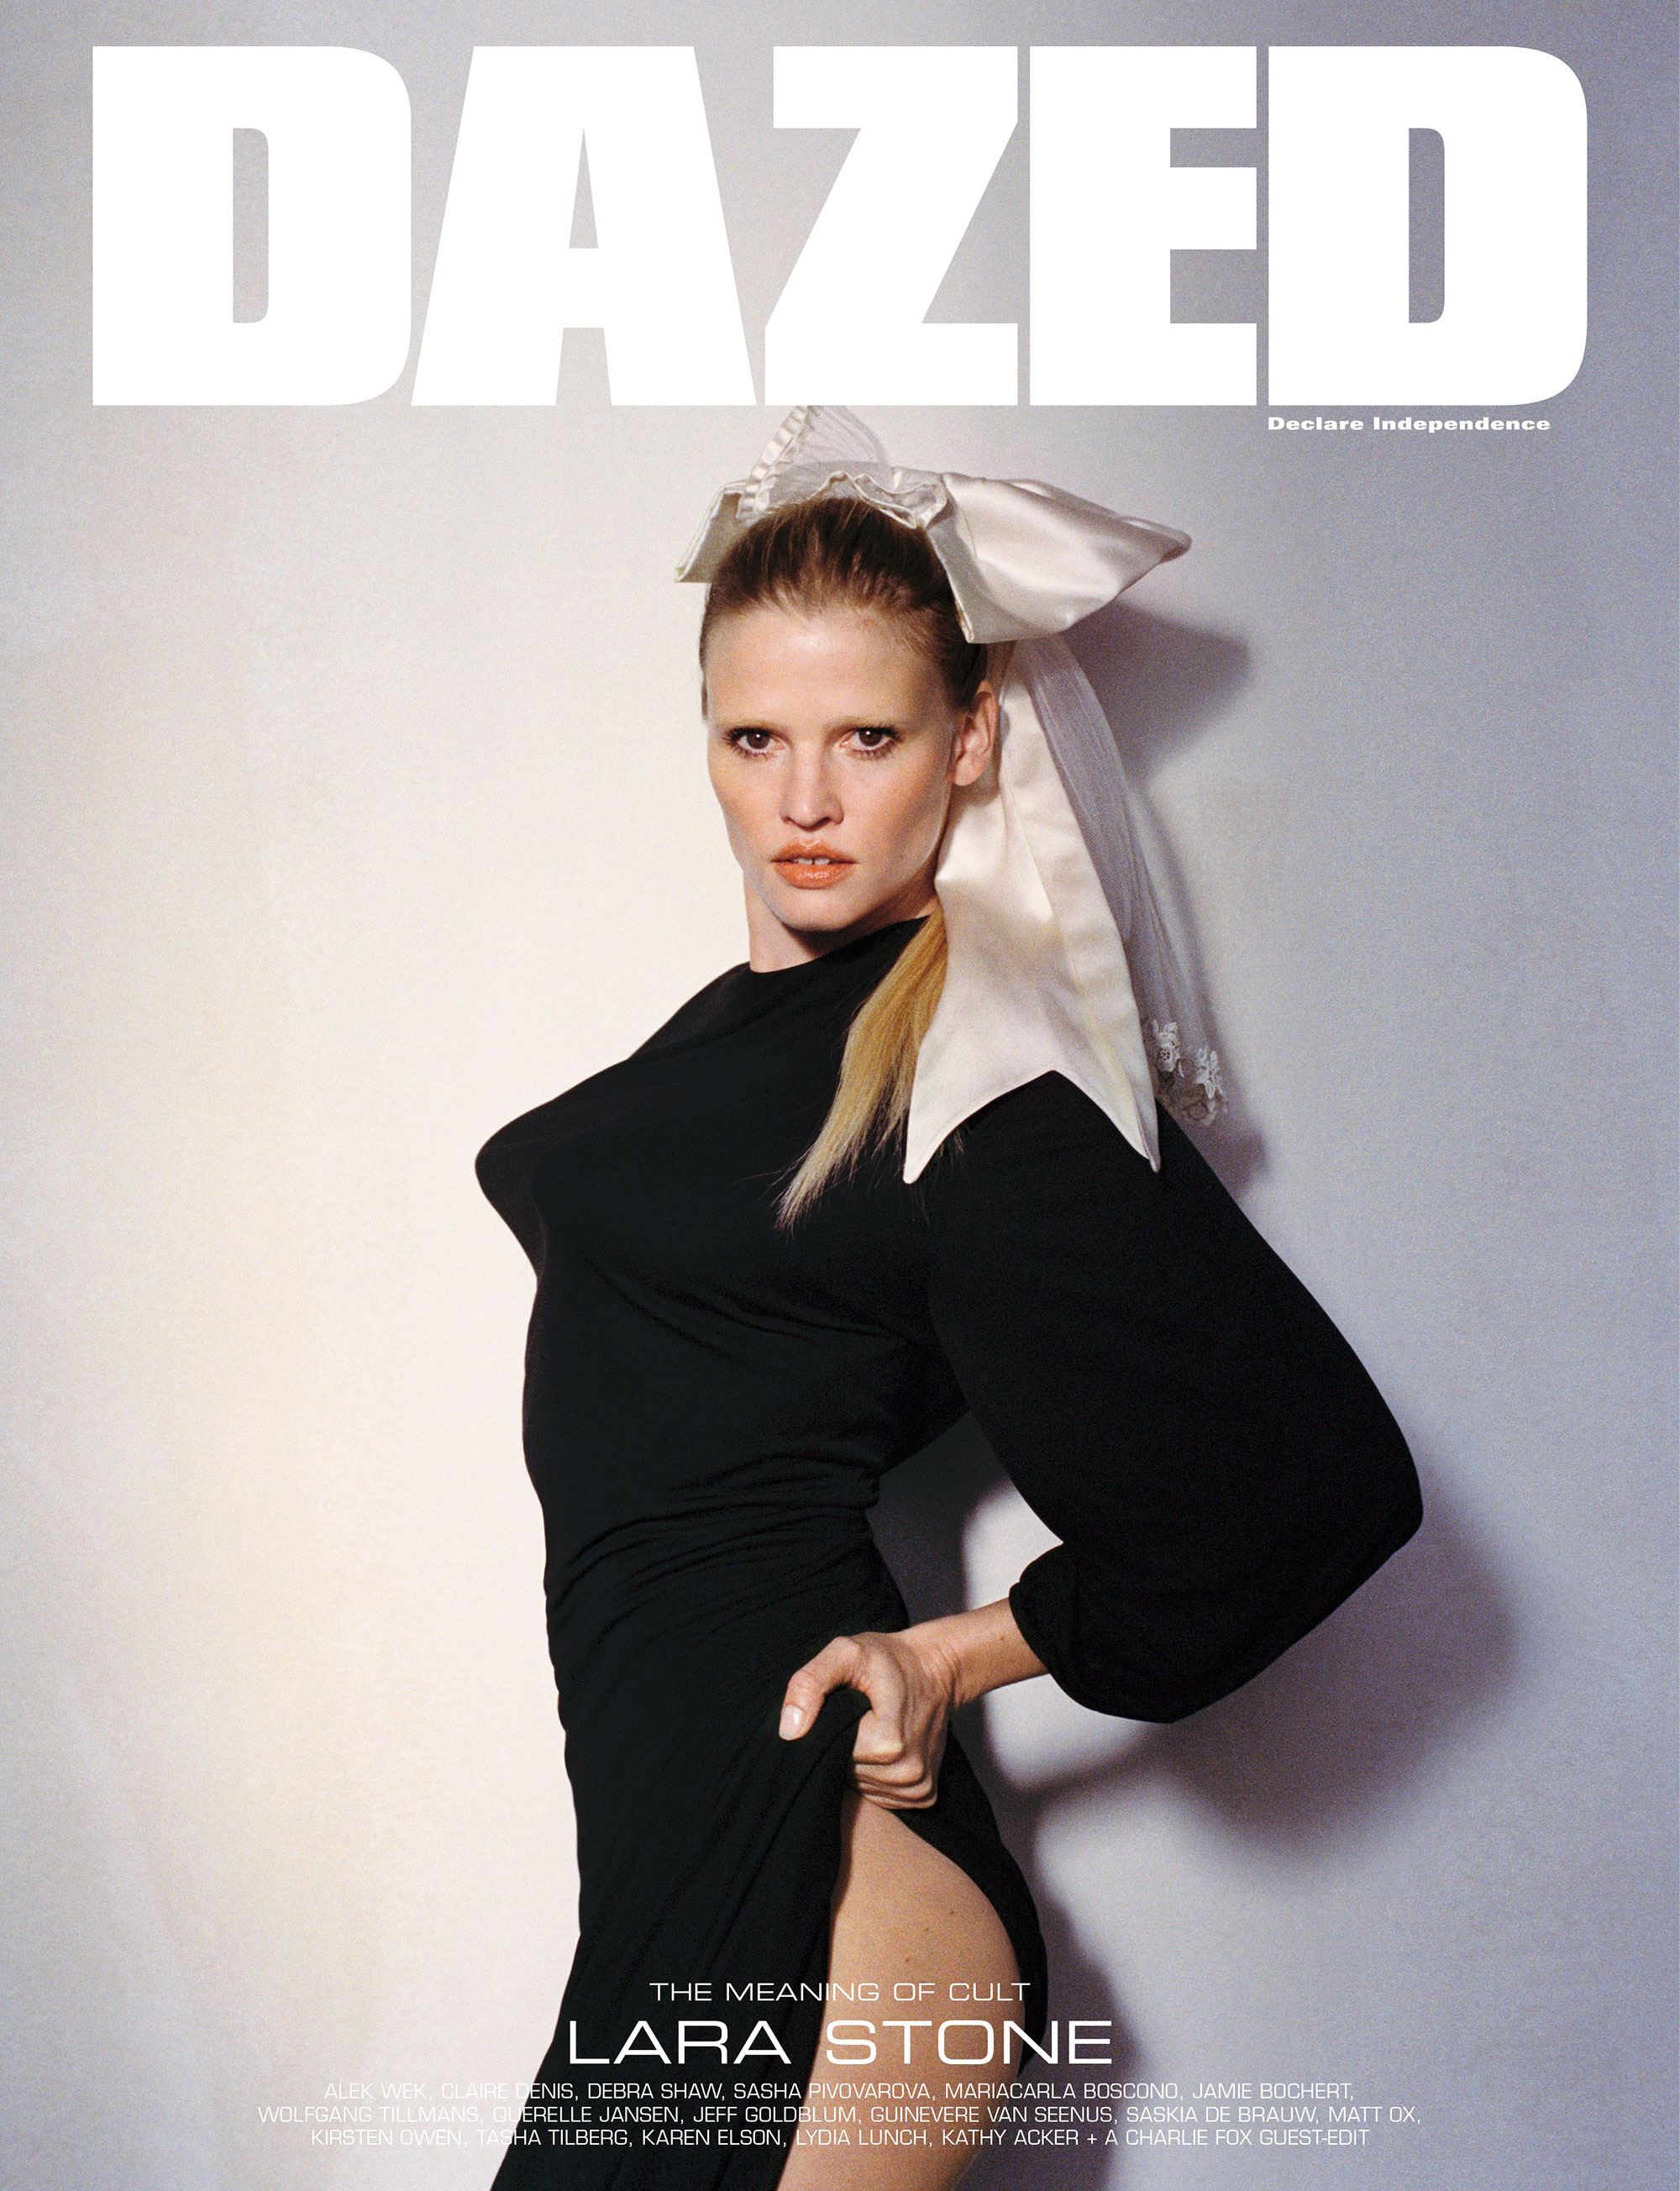 Lara Stone by Brianna Capozzi for Dazed Magazine's SS2019 'The Meaning of Cult' issue.